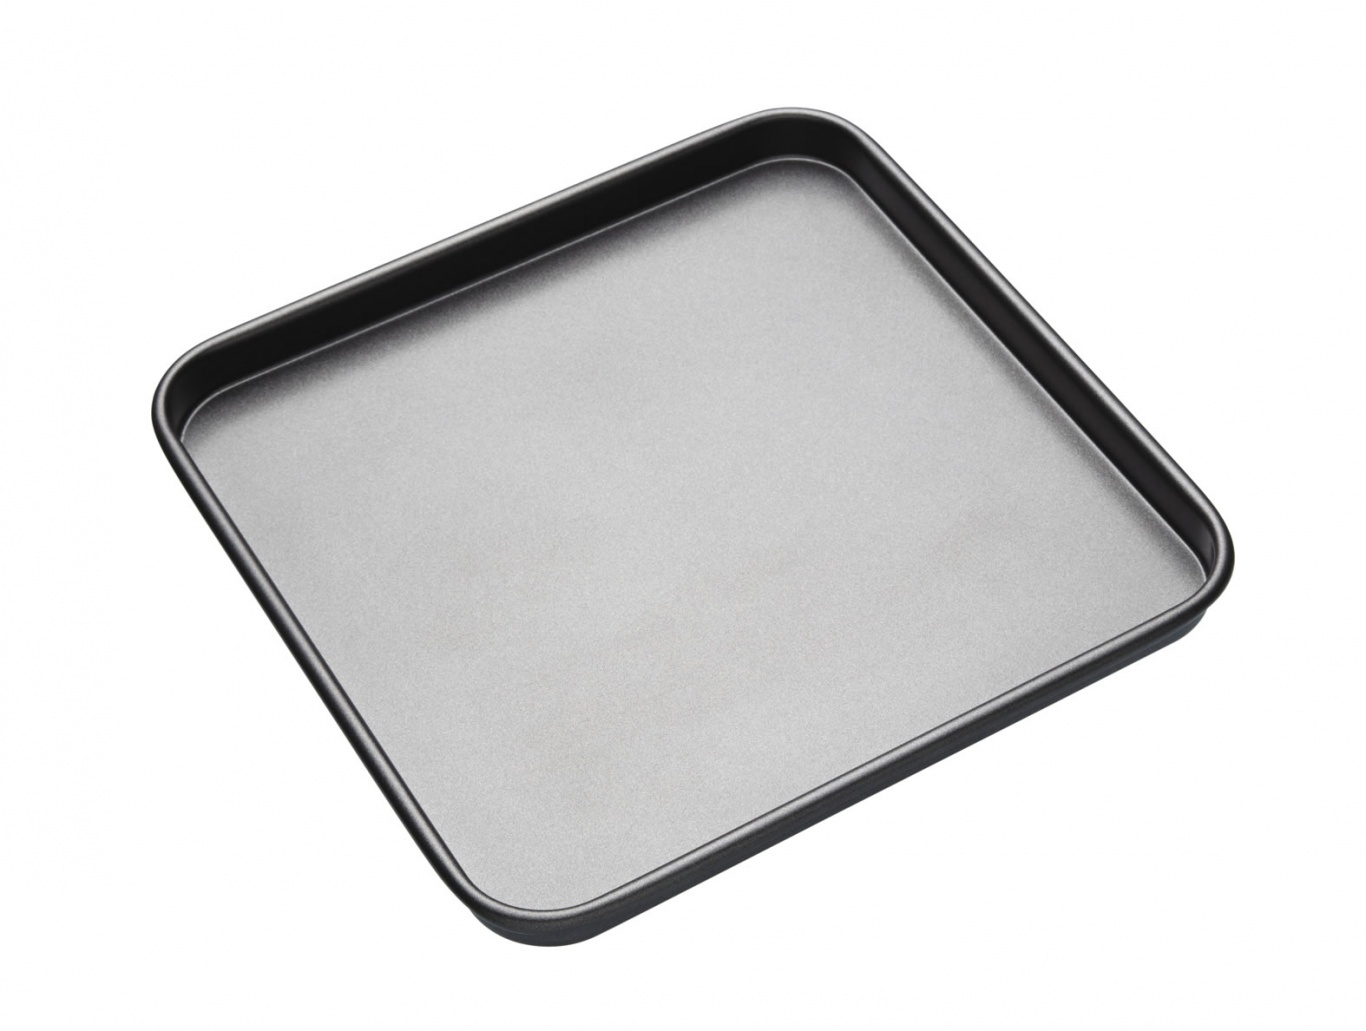 Image of Non Stick Square Baking Tray 26cm x 26cm x 1cm